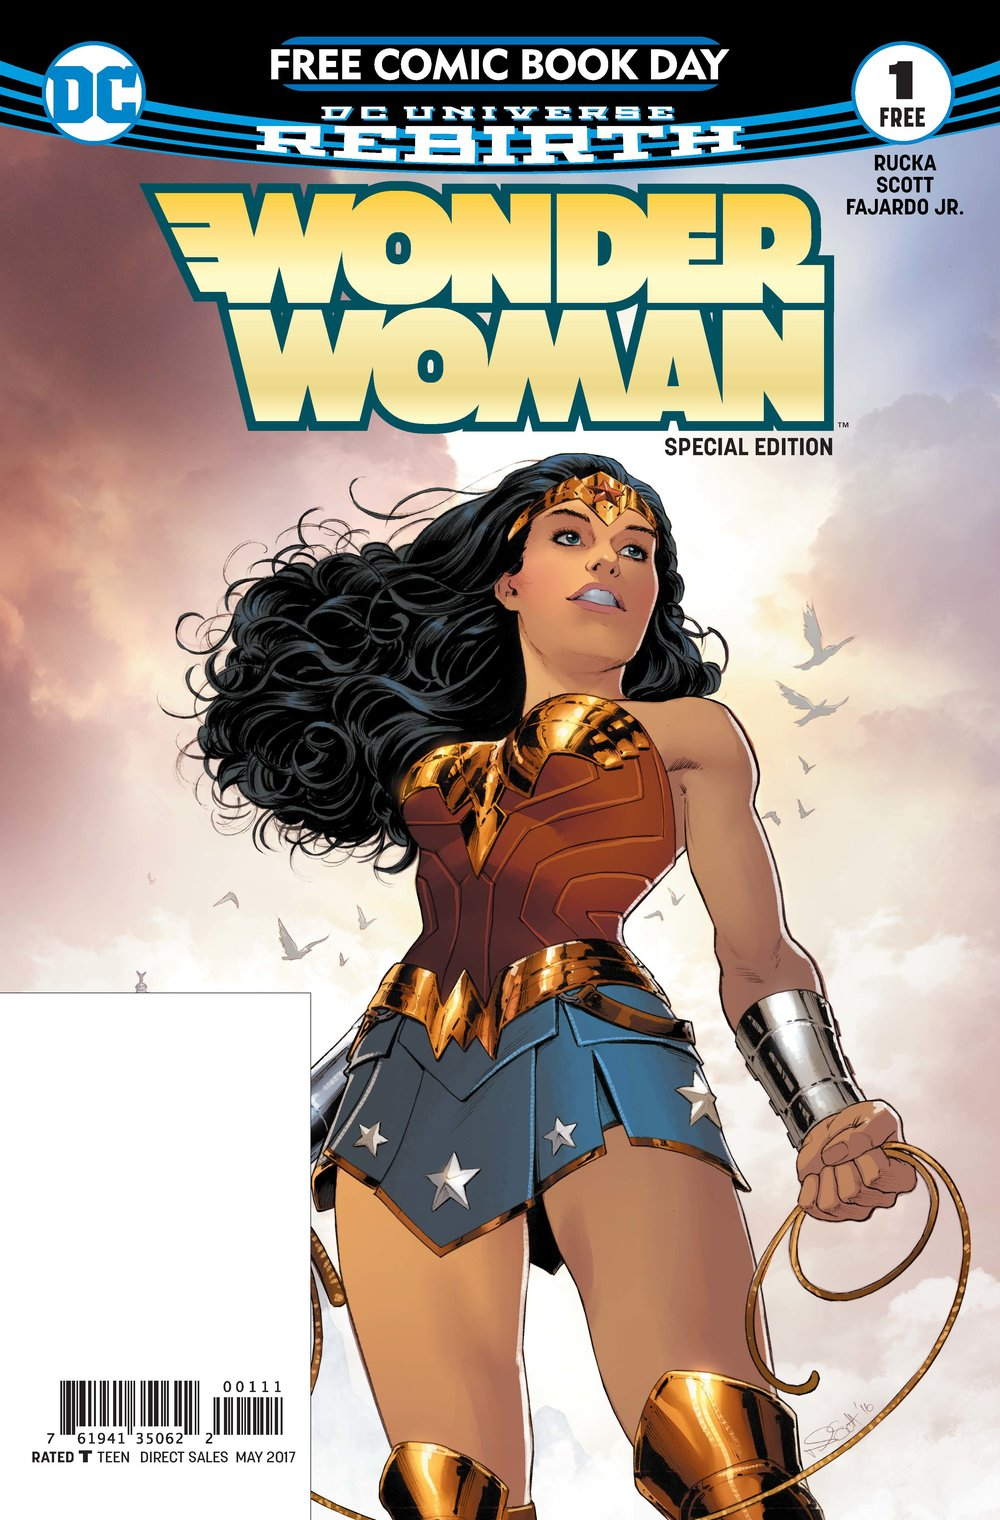 WONDER WOMAN FCBD SPECIAL EDITION #1